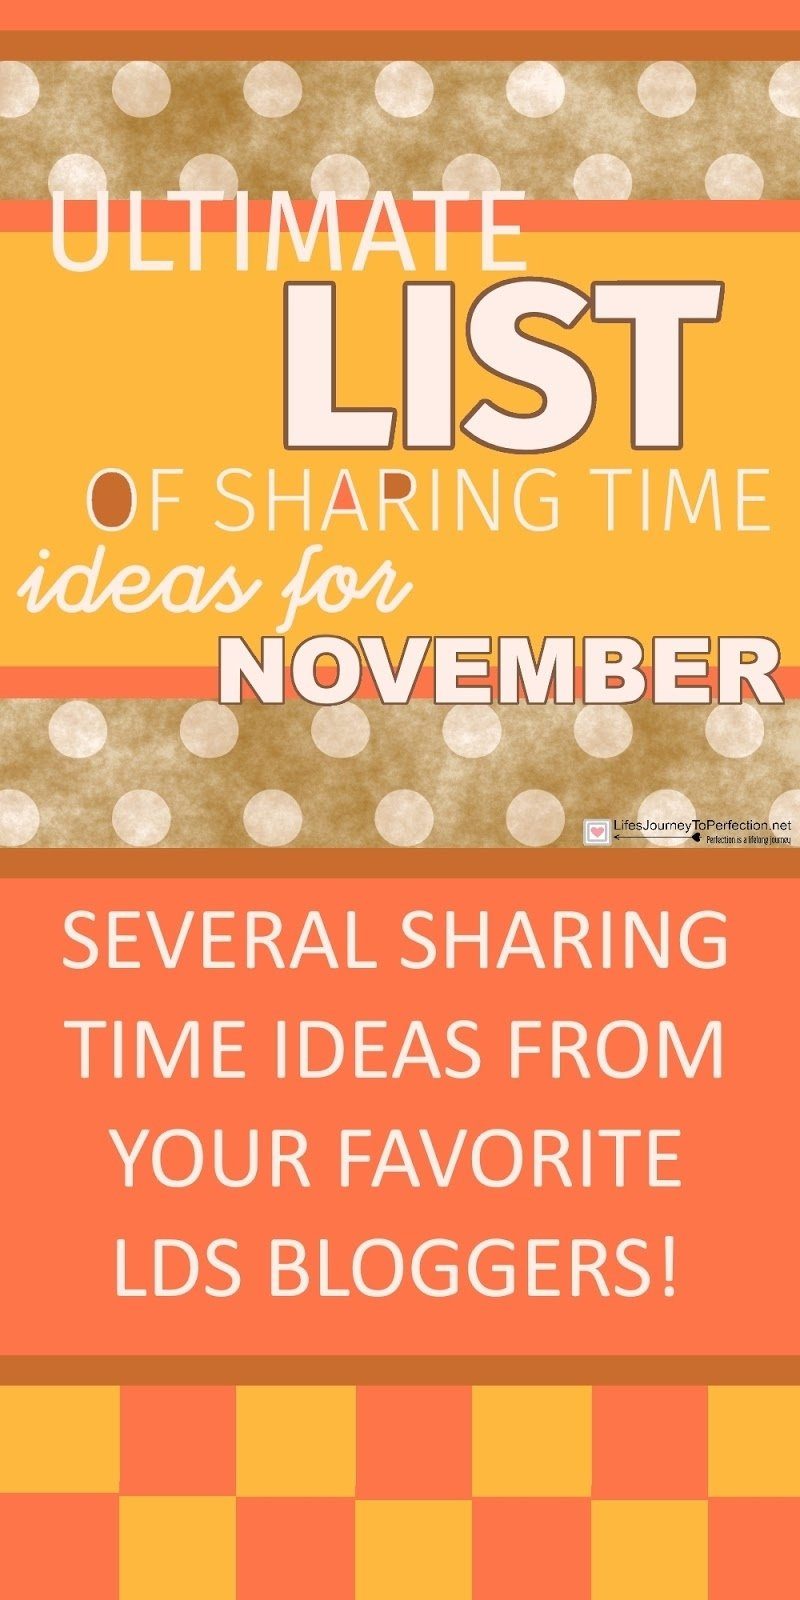 10 Attractive Lds Primary Sharing Time Ideas lifes journey to perfection ultimate list of lds sharing time 1 2020